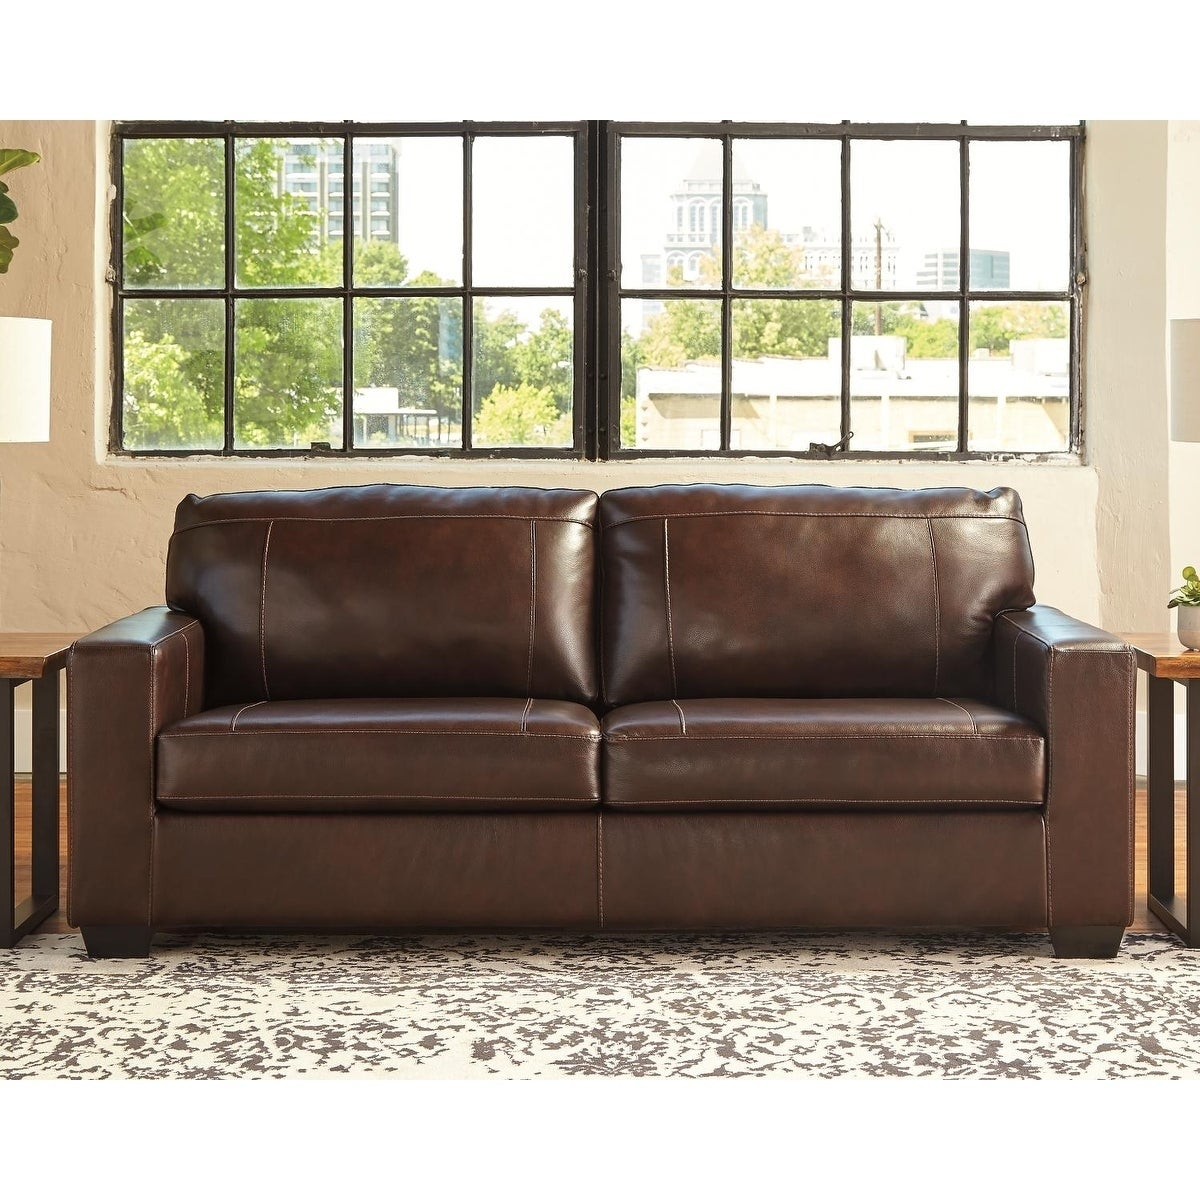 Astounding Buy Leather Sofas Couches Online At Overstock Our Best Onthecornerstone Fun Painted Chair Ideas Images Onthecornerstoneorg